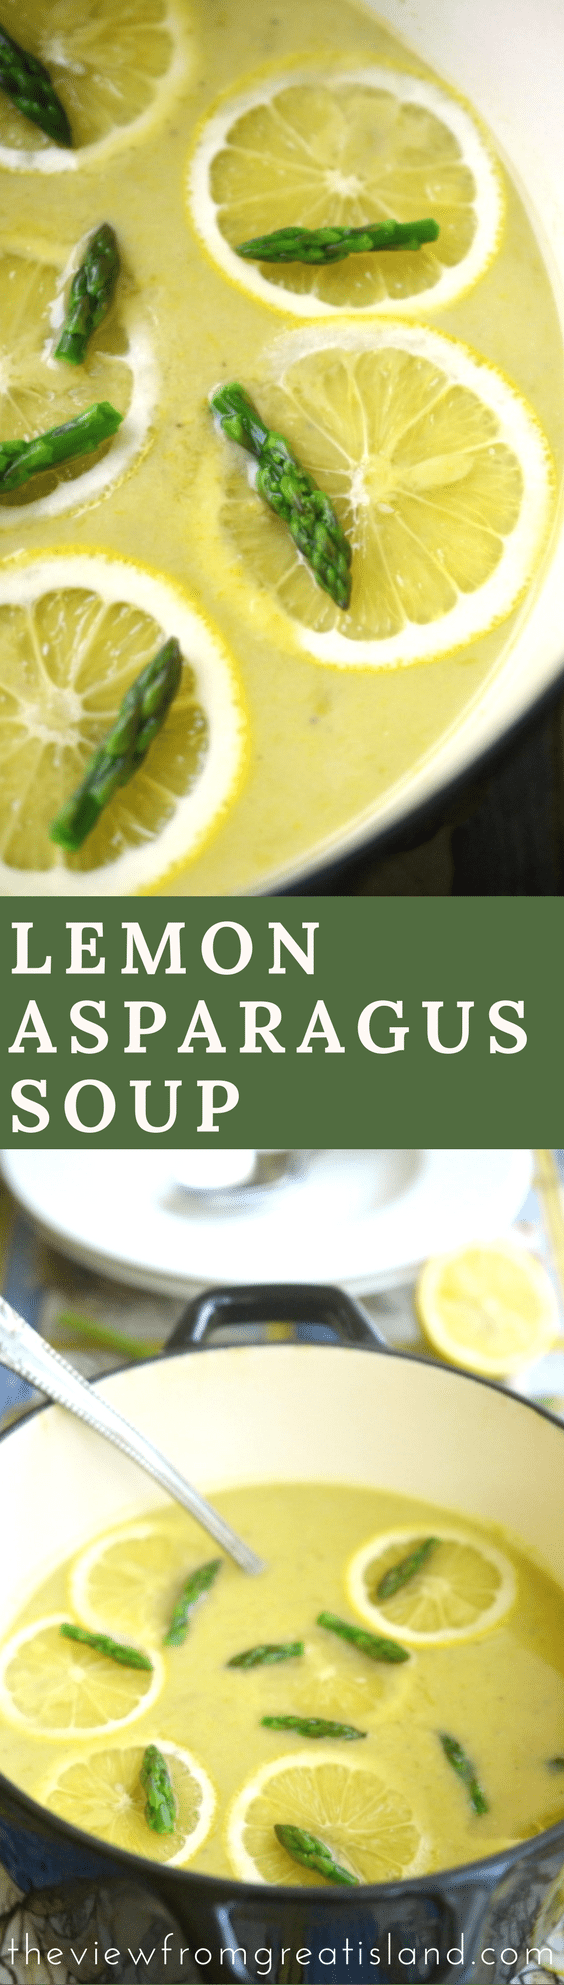 This soup will give you another excuse to gorge on the fresh, in-season asparagus available this time of year. It's just the picture of spring, if you ask me. #soup #asparagussoup #asparagus #springsoup #springrecipe #healthysouprecipe #lemonasparagussoup #glutenfree